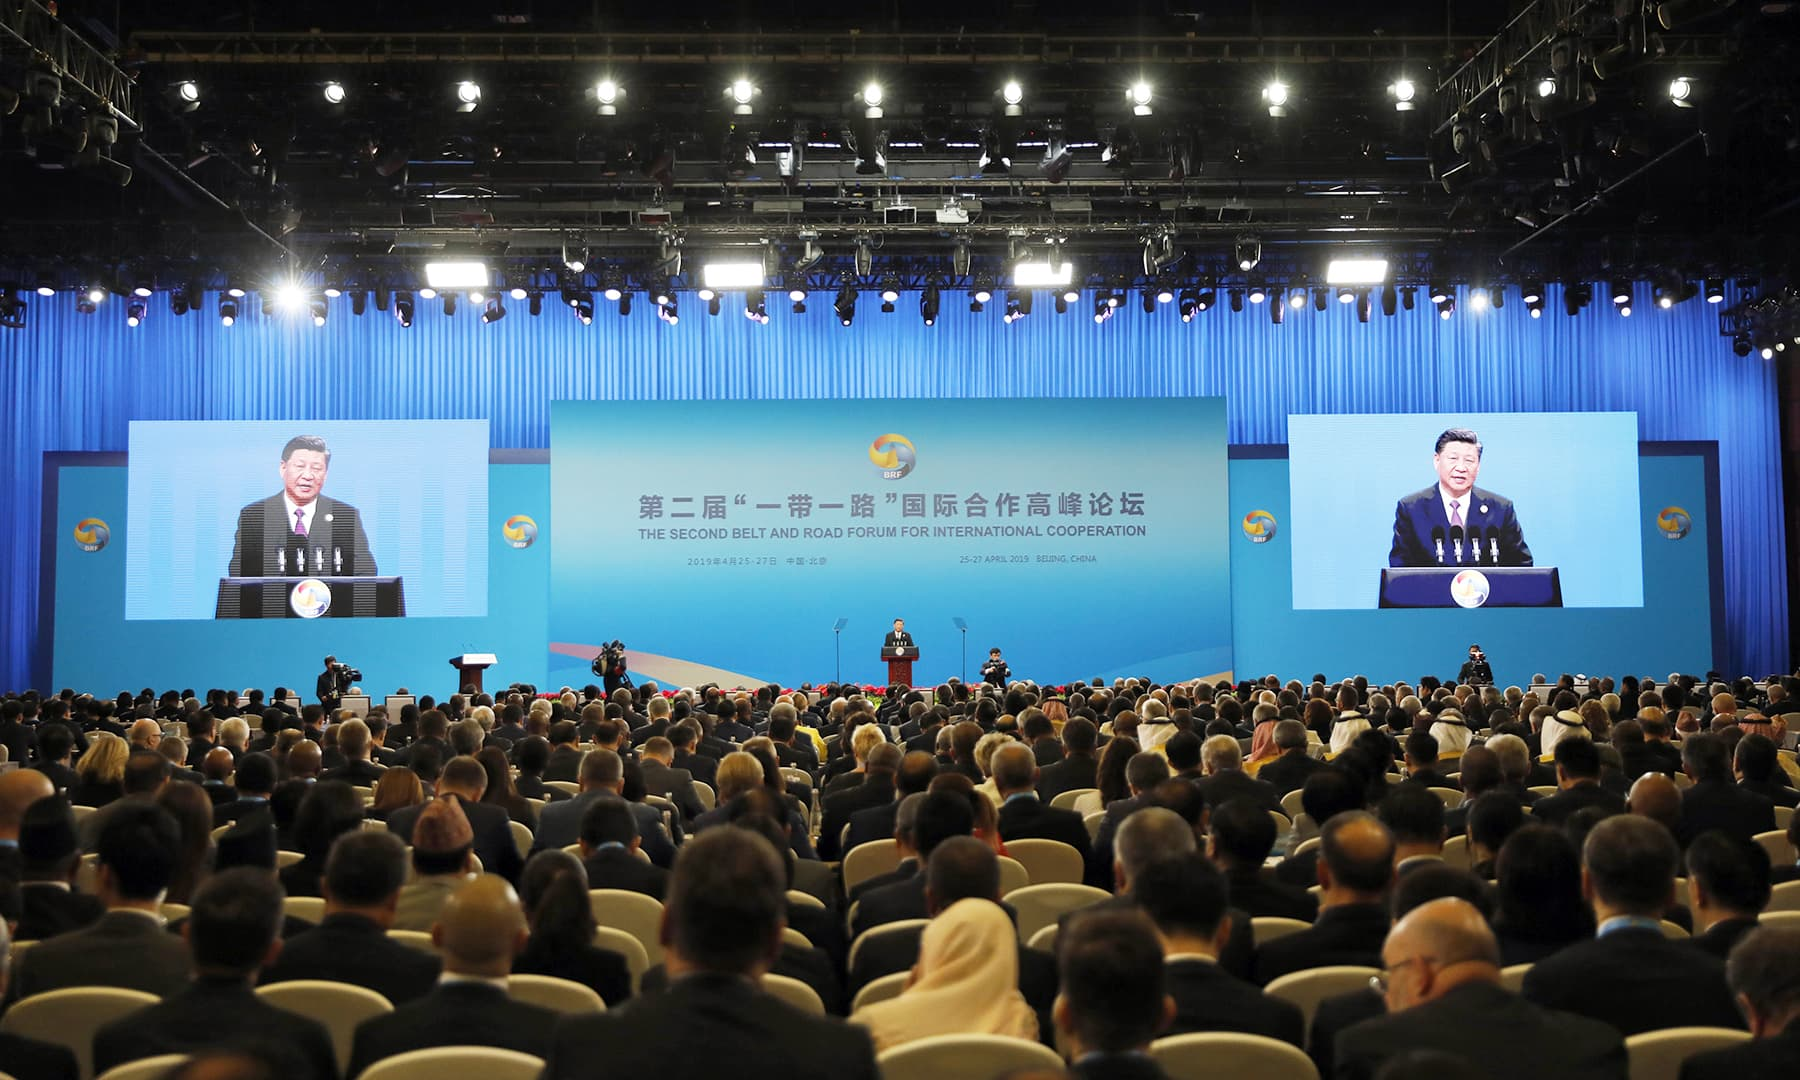 Chinese President Xi Jinping delivers his speech for the opening ceremony of the second Belt and Road Forum for International Cooperation (BRF) on Friday, April 26. — AP